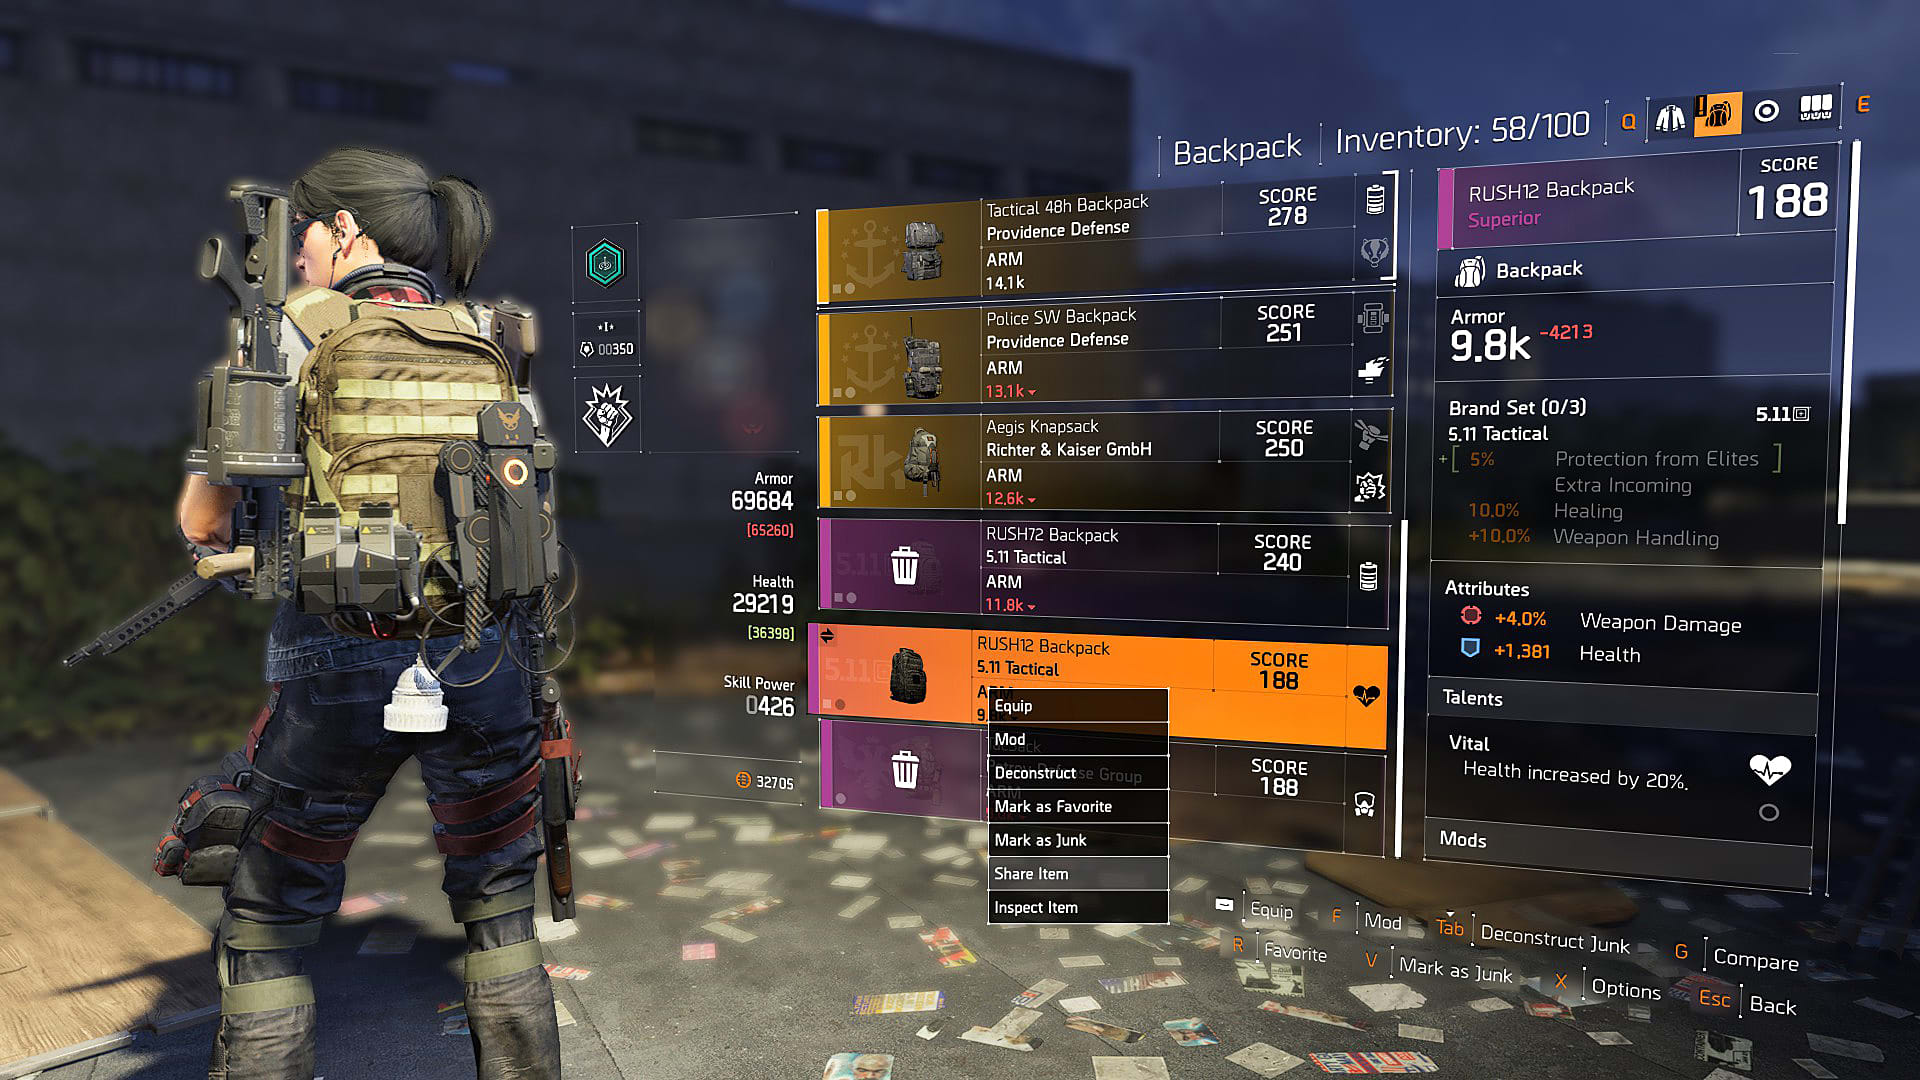 How to Share Items, Gear, Loot in The Division 2 | Tom Clancy's The